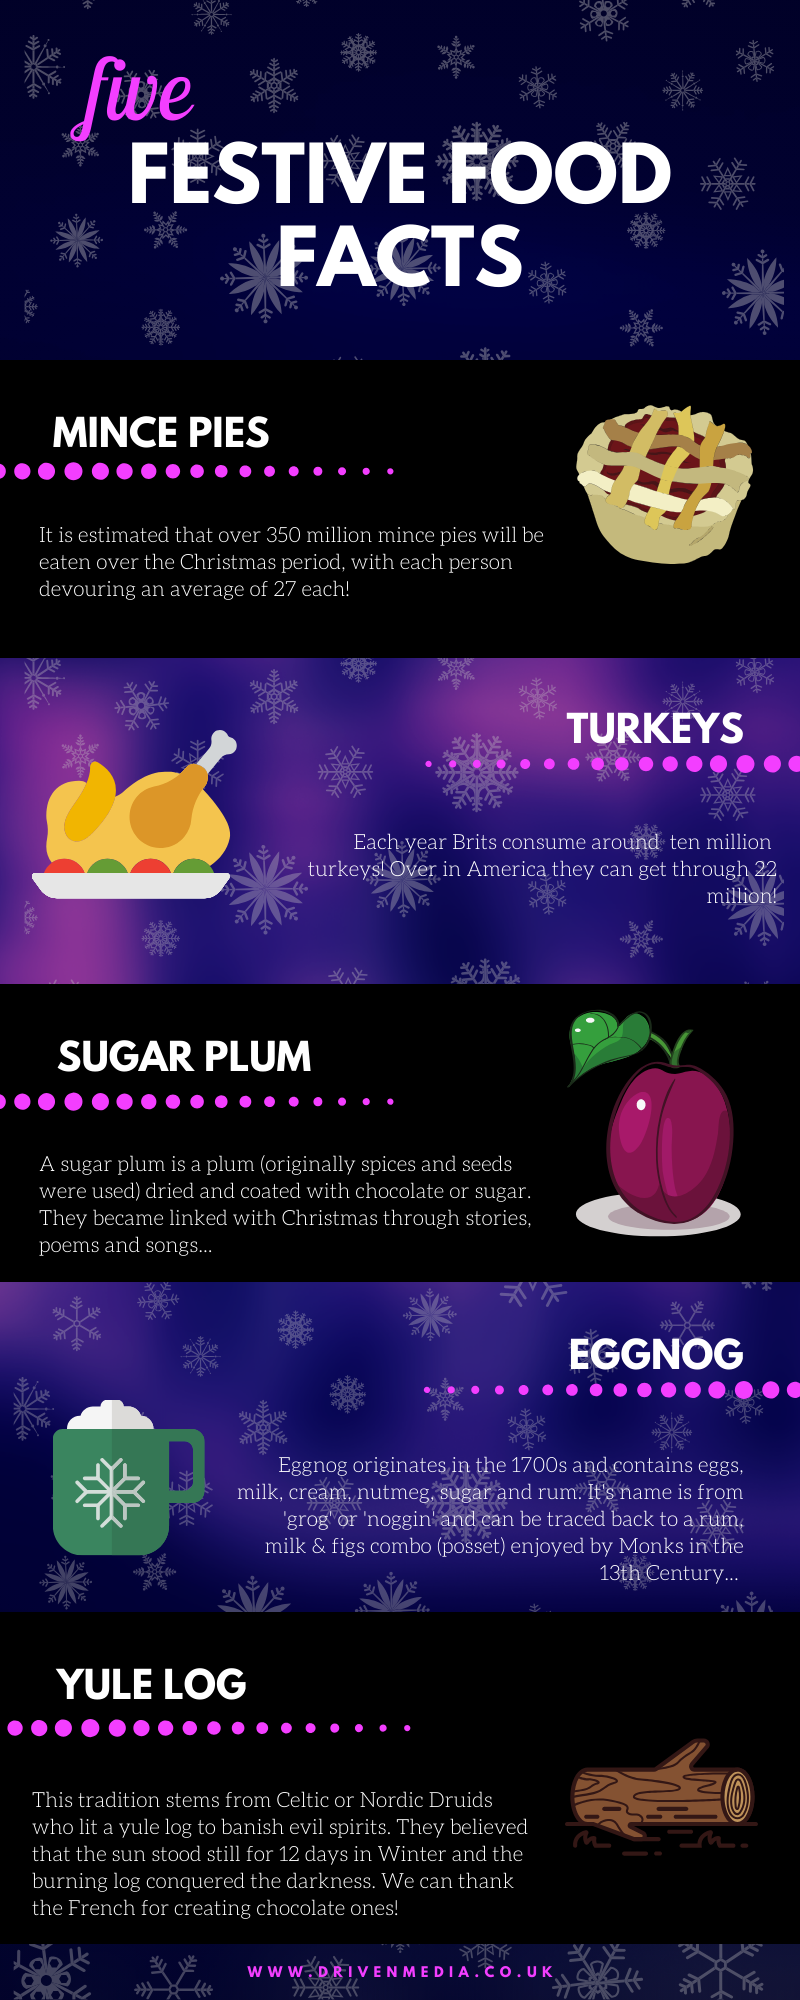 Infographic detailing facts about five different christmas foods including mince pies, turkey, sugar plums, eggnog and yule logs.